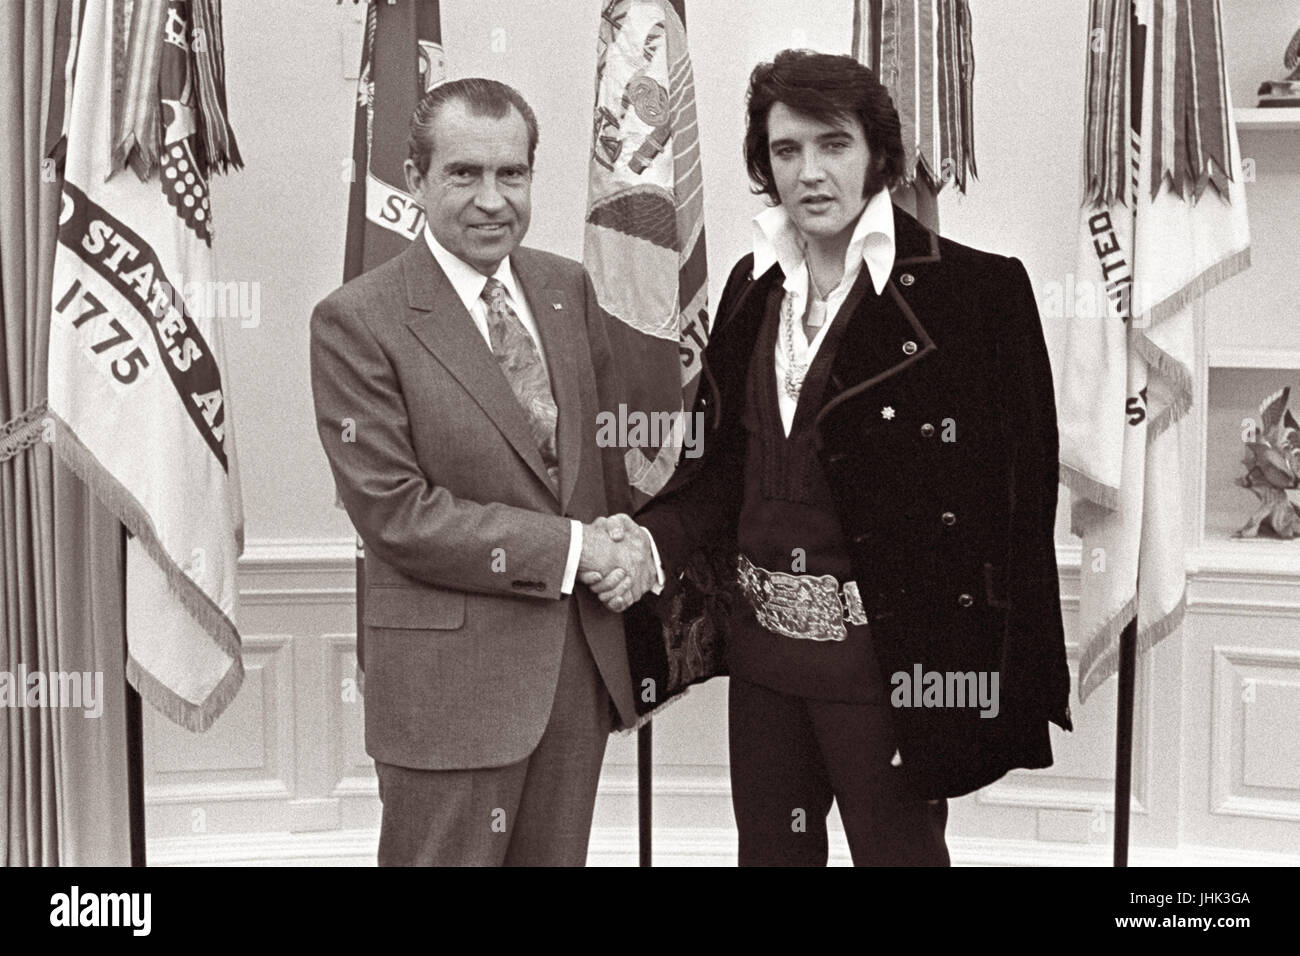 President Nixon shaking hands with entertainer Elvis Presley in the Oval Office of the White House on December 21, - Stock Image